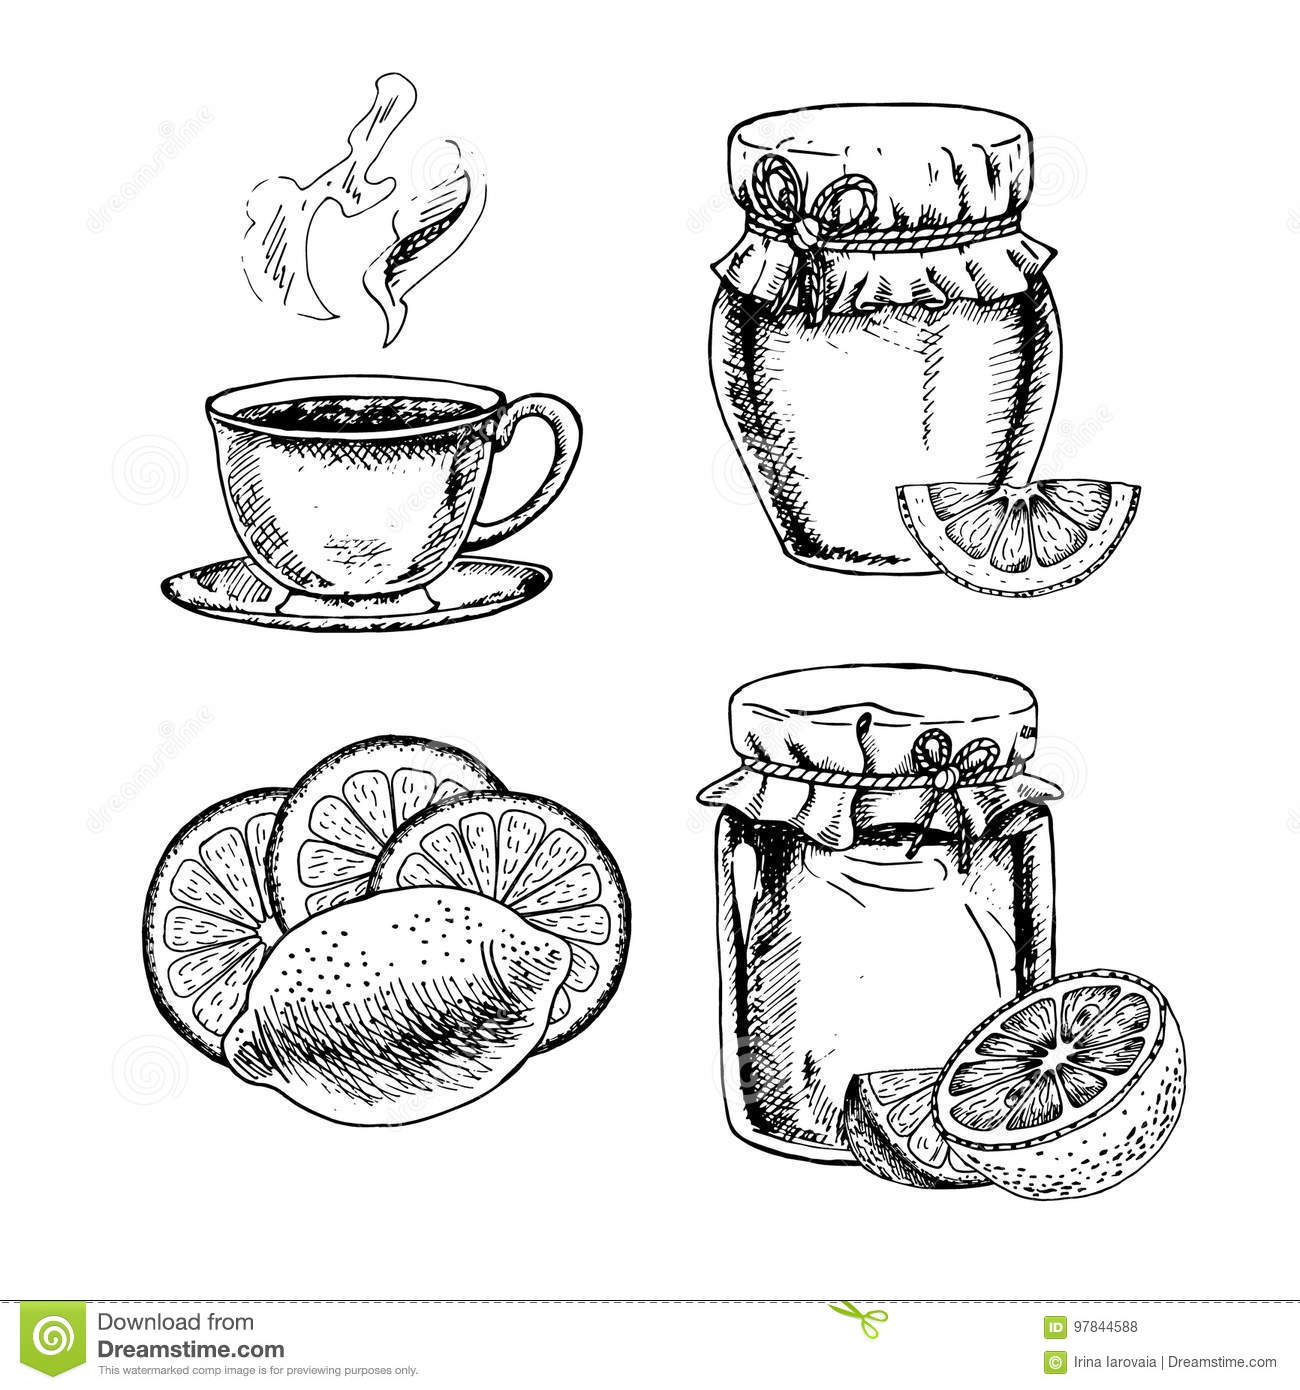 hand drawn set of honey lemon and tea vector sketch stock vector illustration of lemon doodle 97844588 https www dreamstime com stock illustration hand drawn set honey lemon tea vector sketch retro isolated sketches vintage collection linear graphic design pieces black image97844588